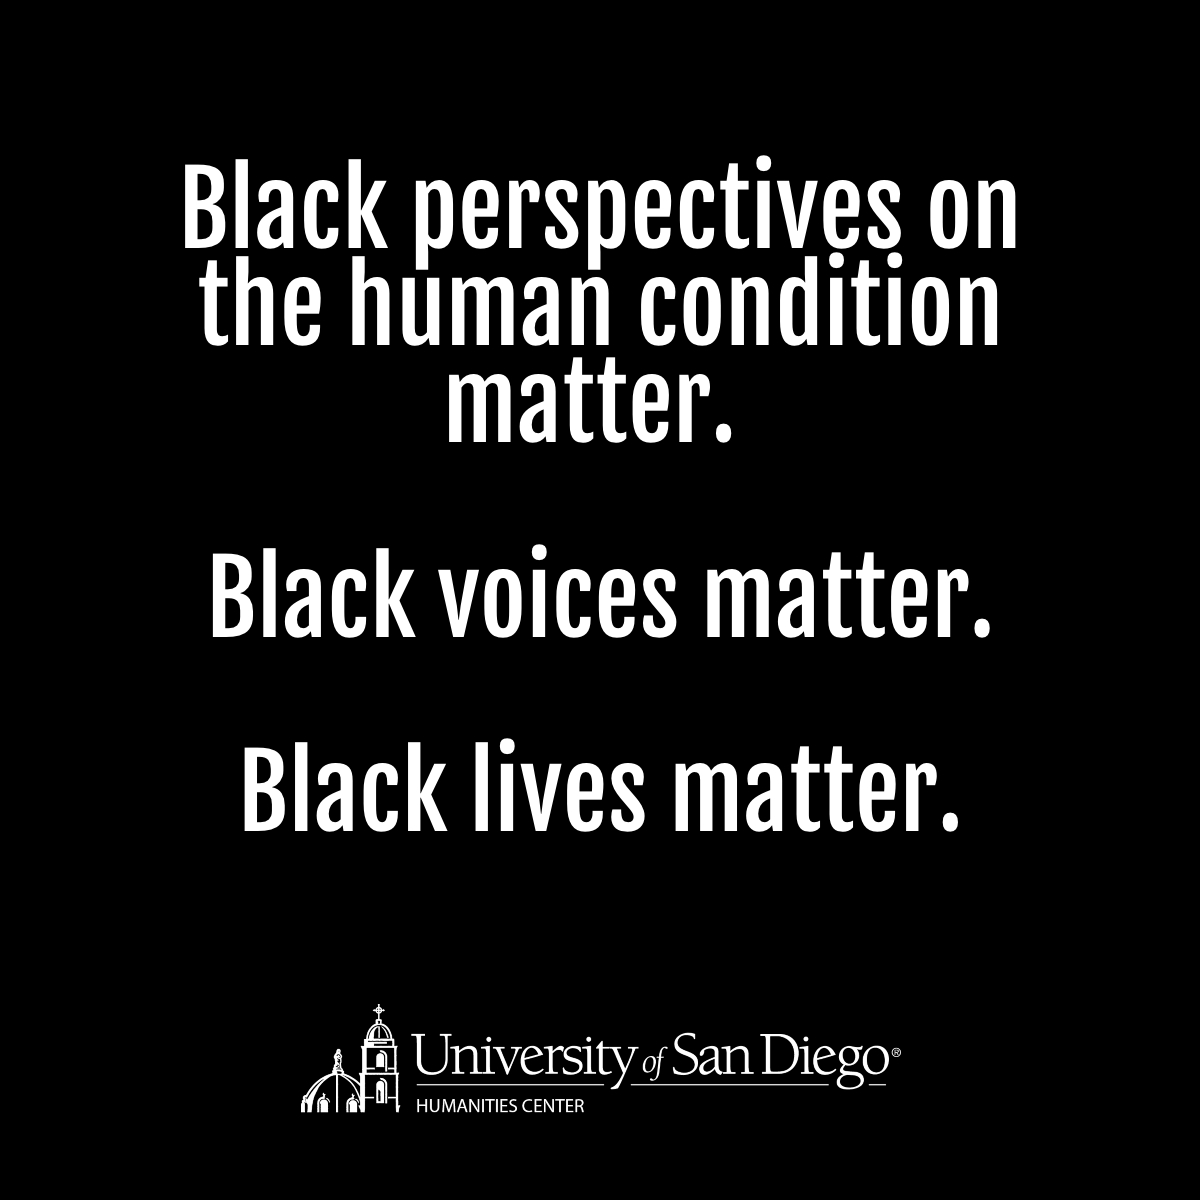 Black box with white text stating  Black perspectives on the human condition matter. Black voices matter. Black lives matter.